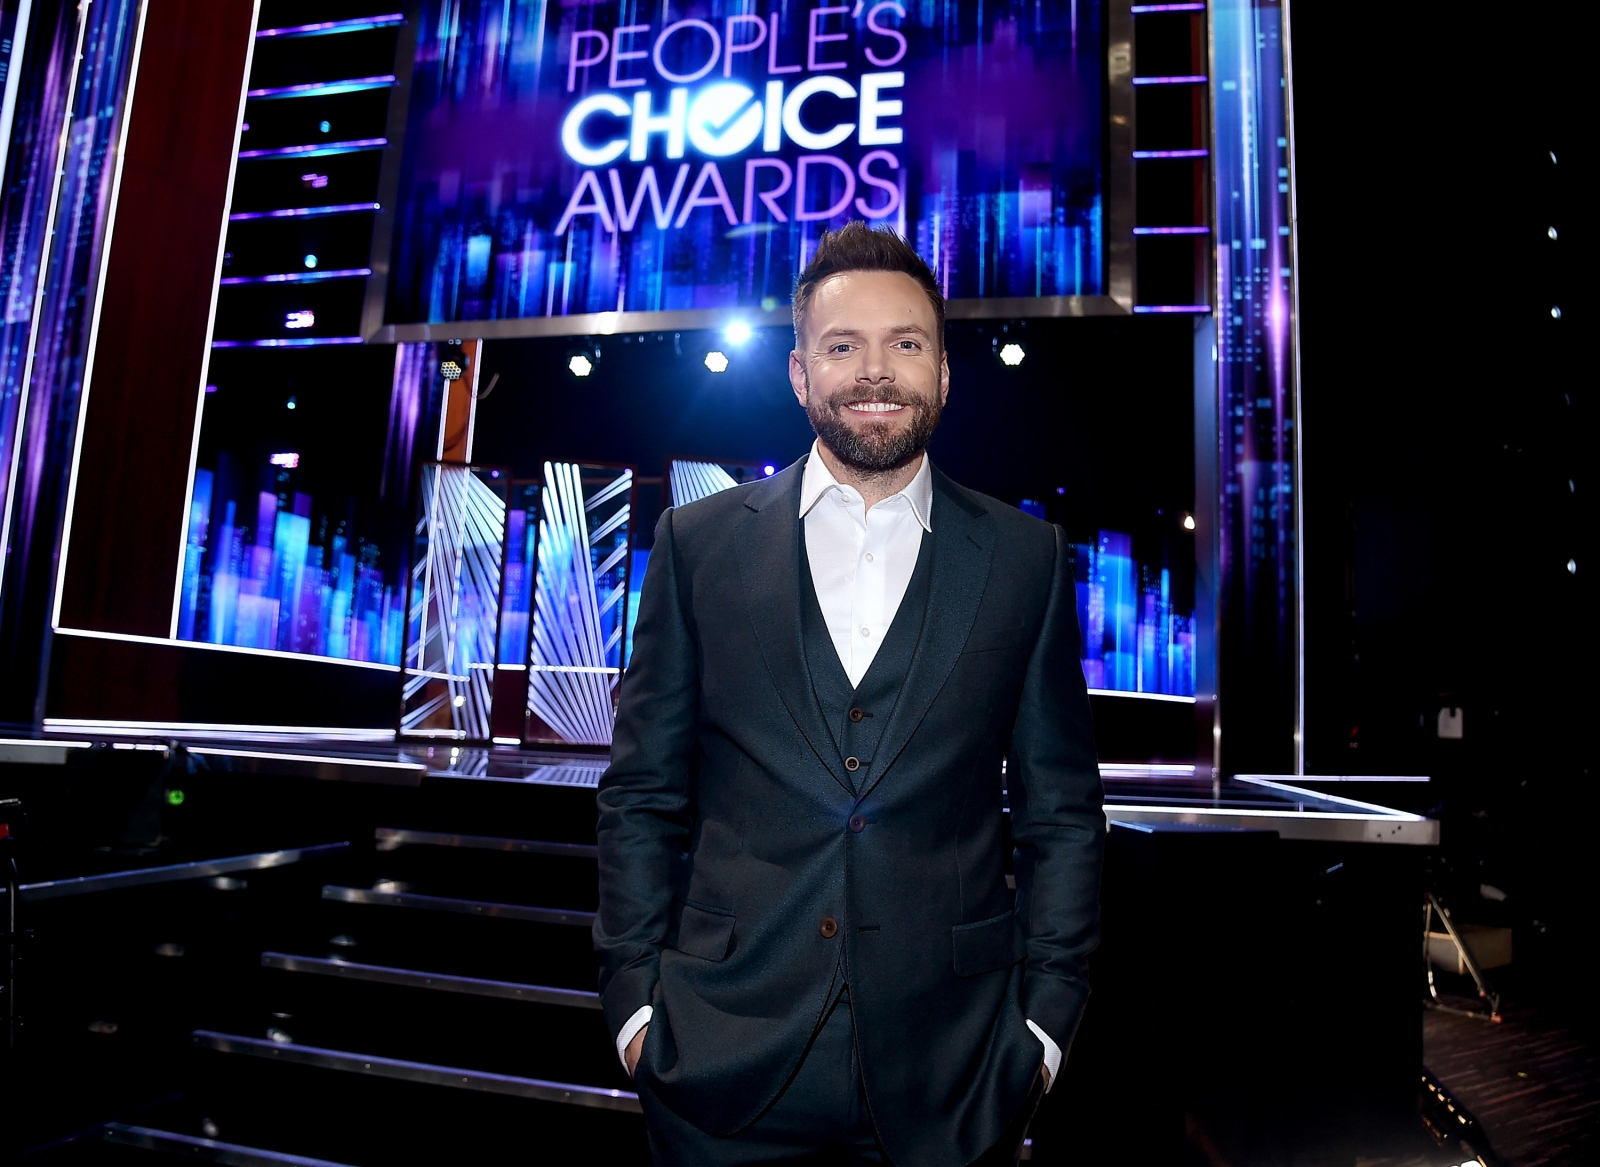 People's Choice Awards 2017 Red Carpet Fashion